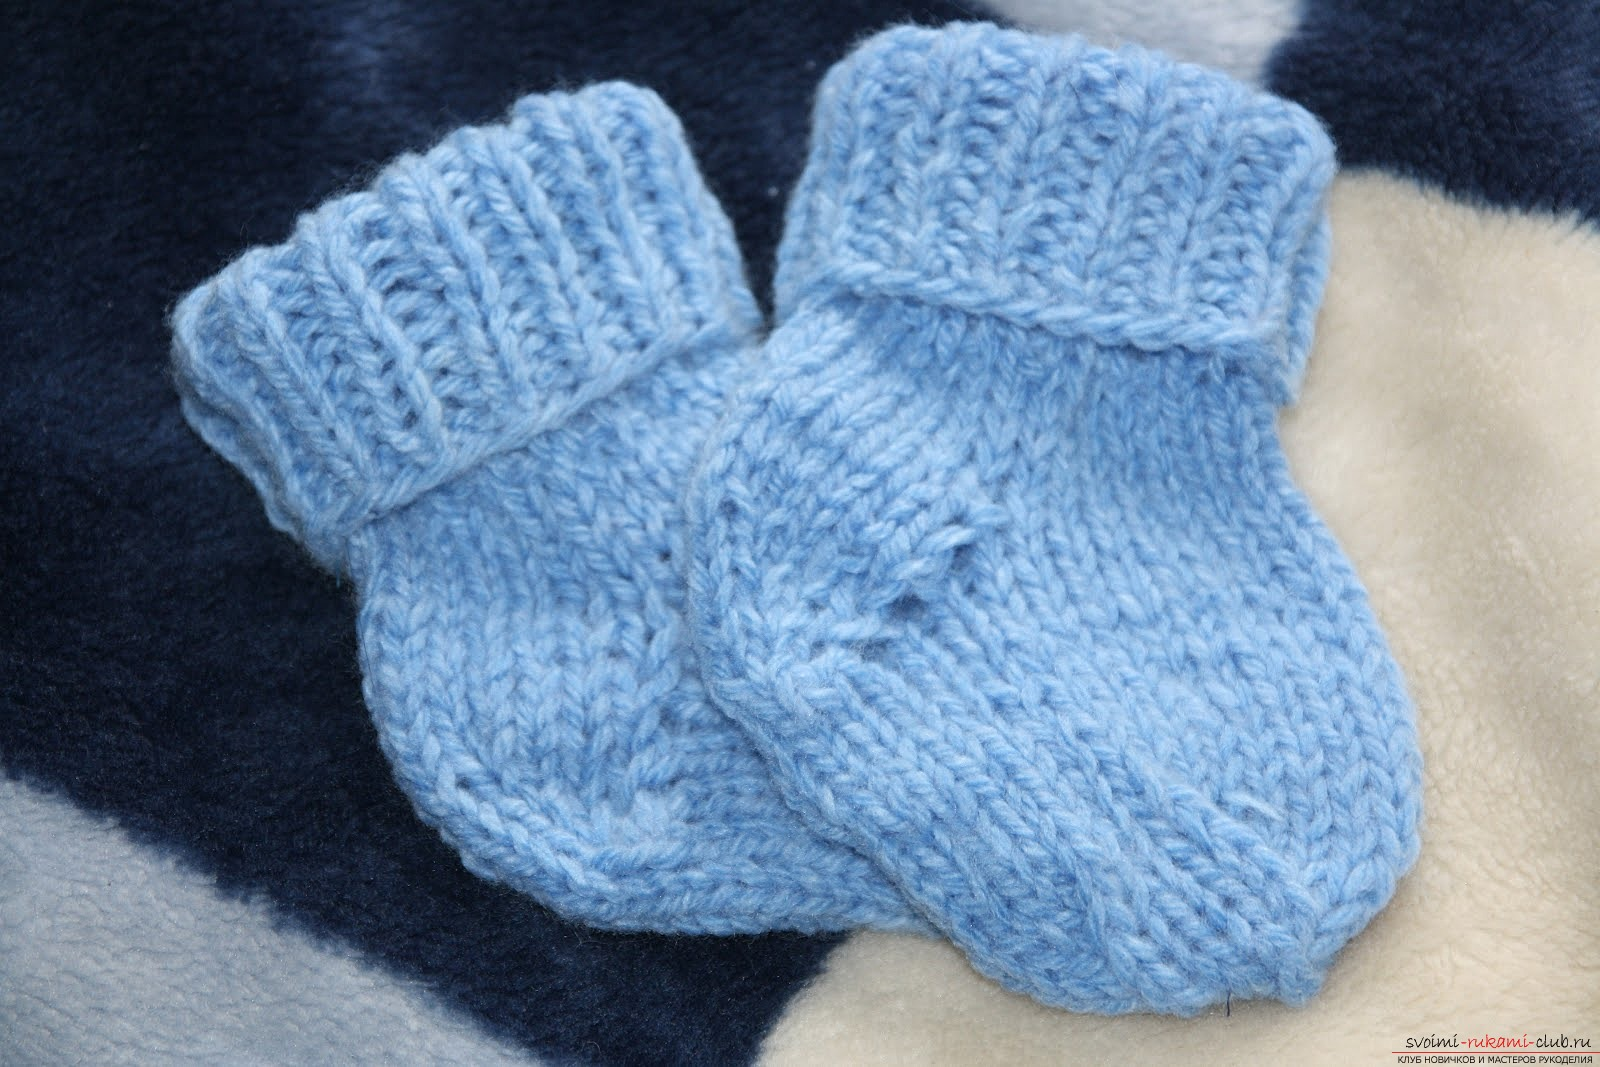 We knit warm socks for the child. Master class for beginner needlewomen with a photo. Photo №1